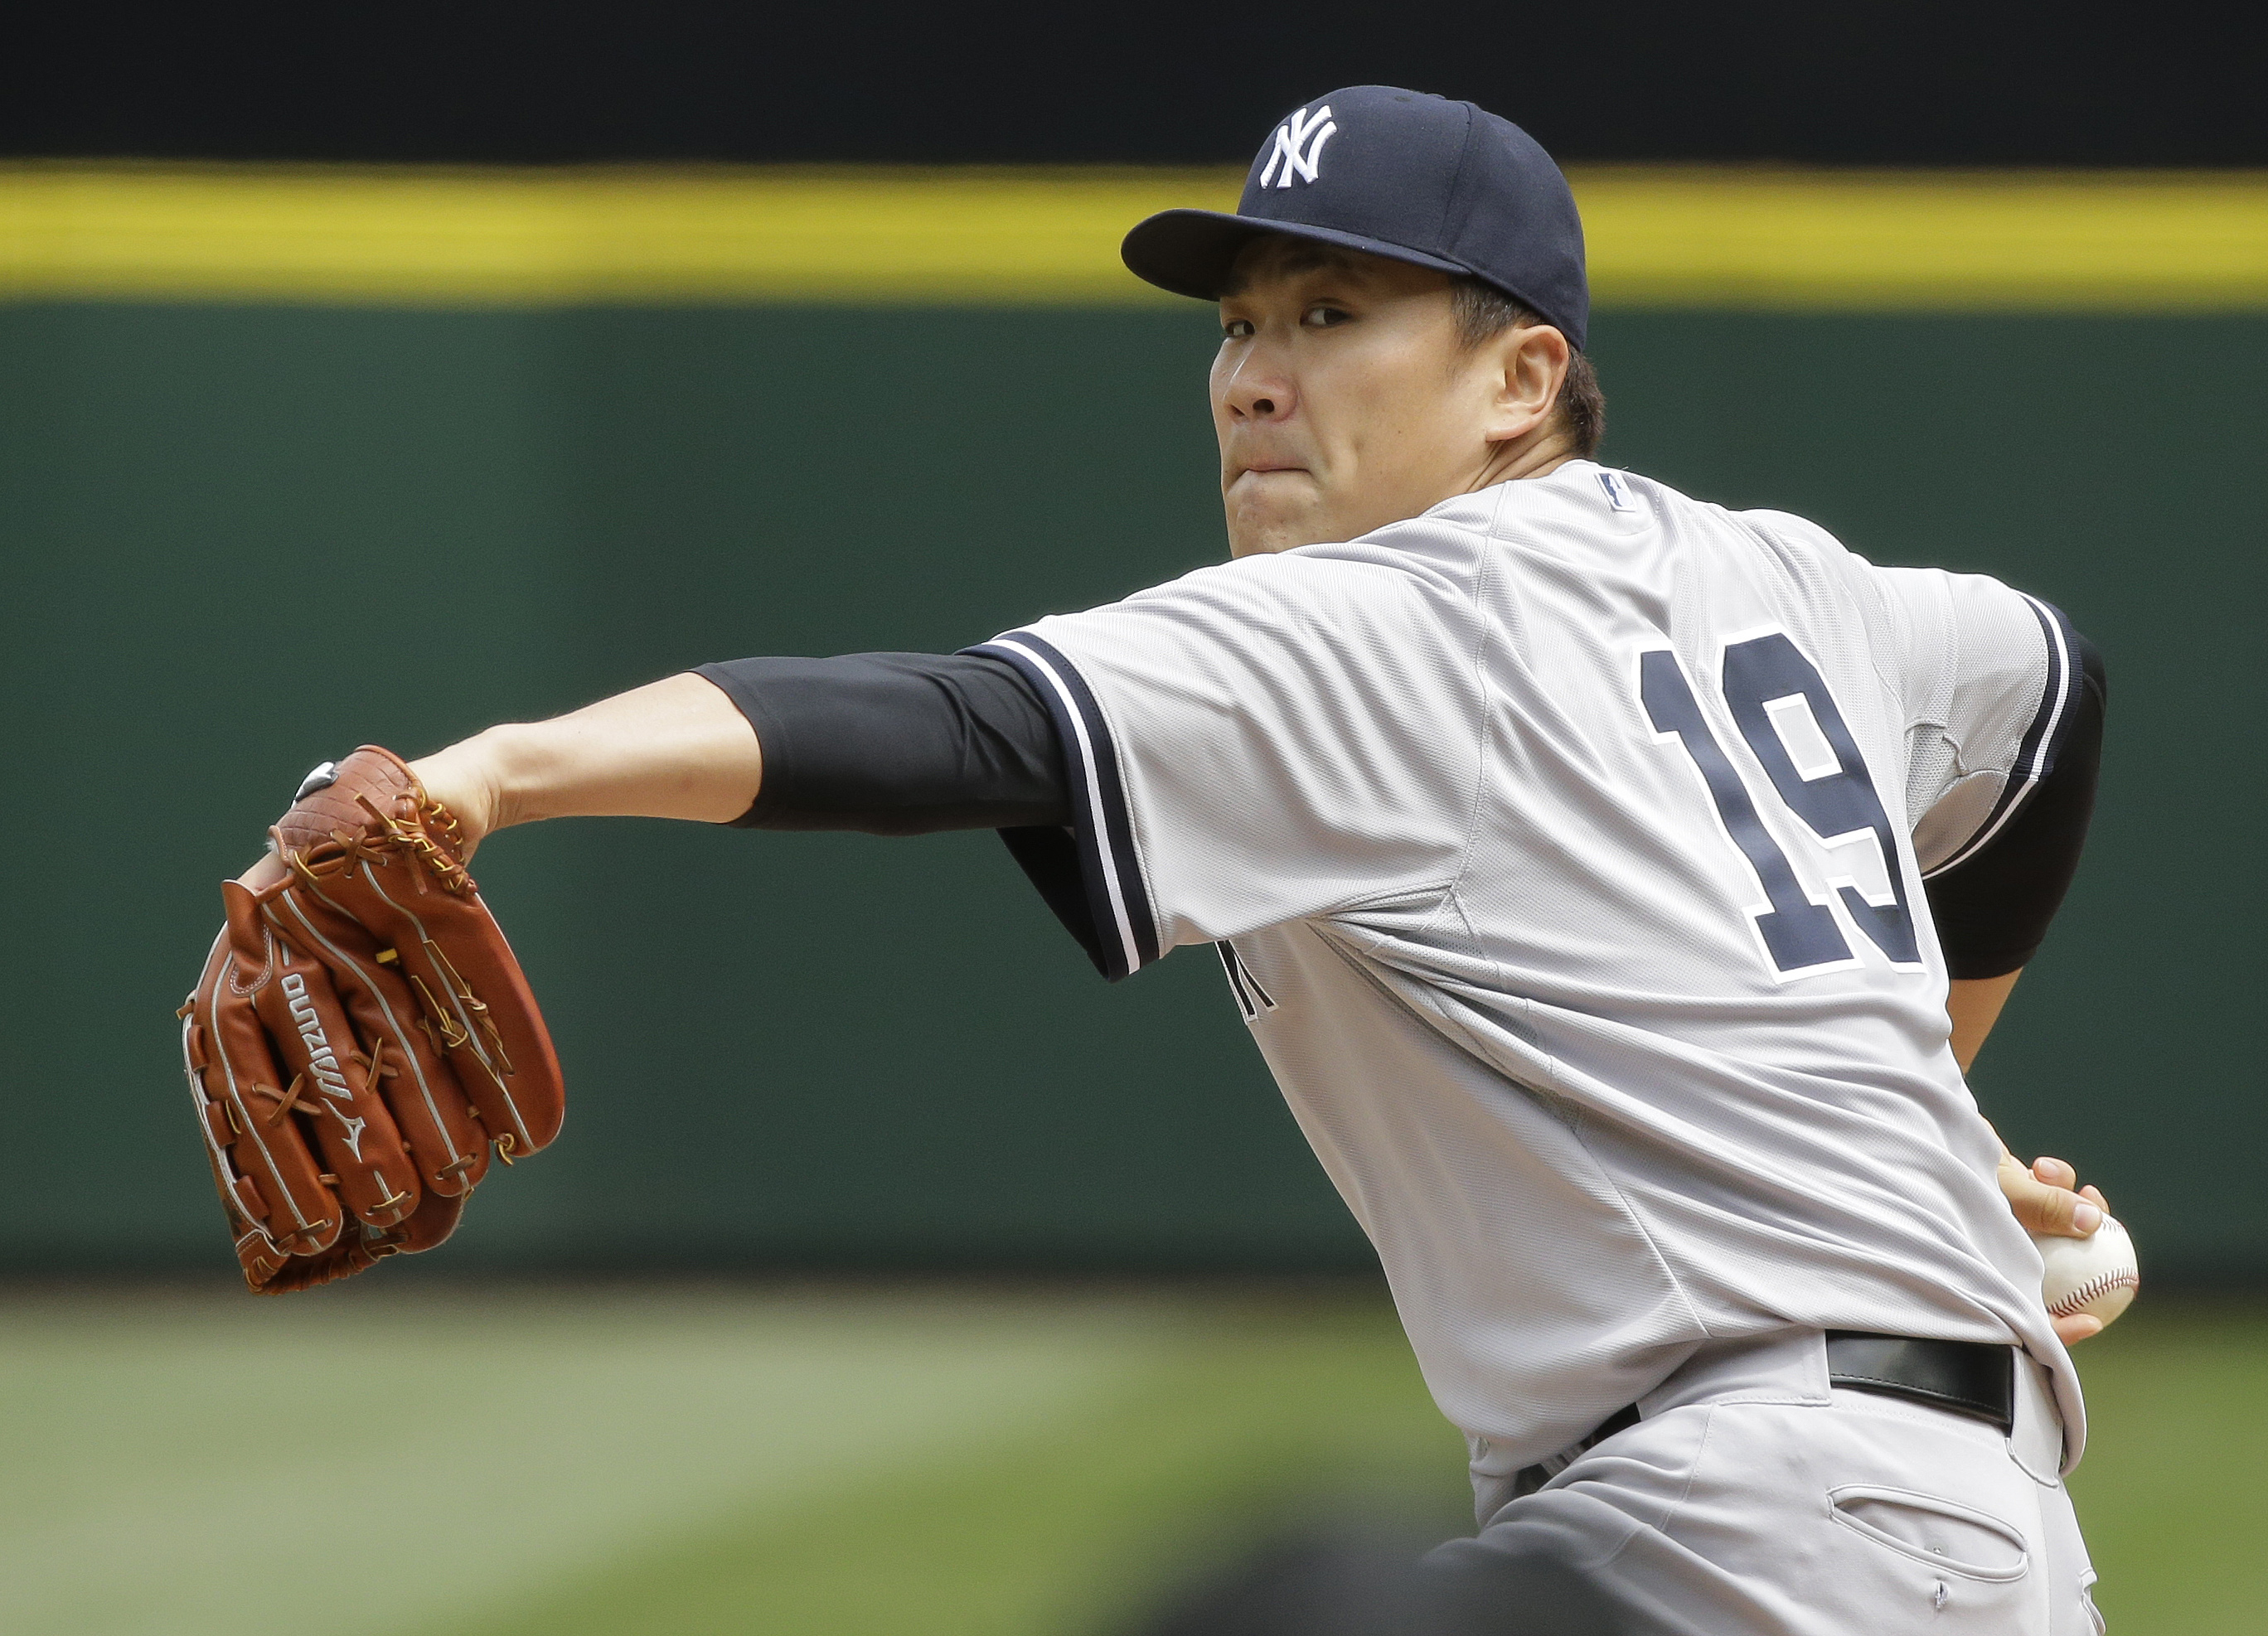 New York Yankees starting pitcher Masahiro Tanaka throws against the Seattle Mariners in the first inning of a baseball game, Wednesday, June 3, 2015, in Seattle. (AP Photo/Ted S. Warren)